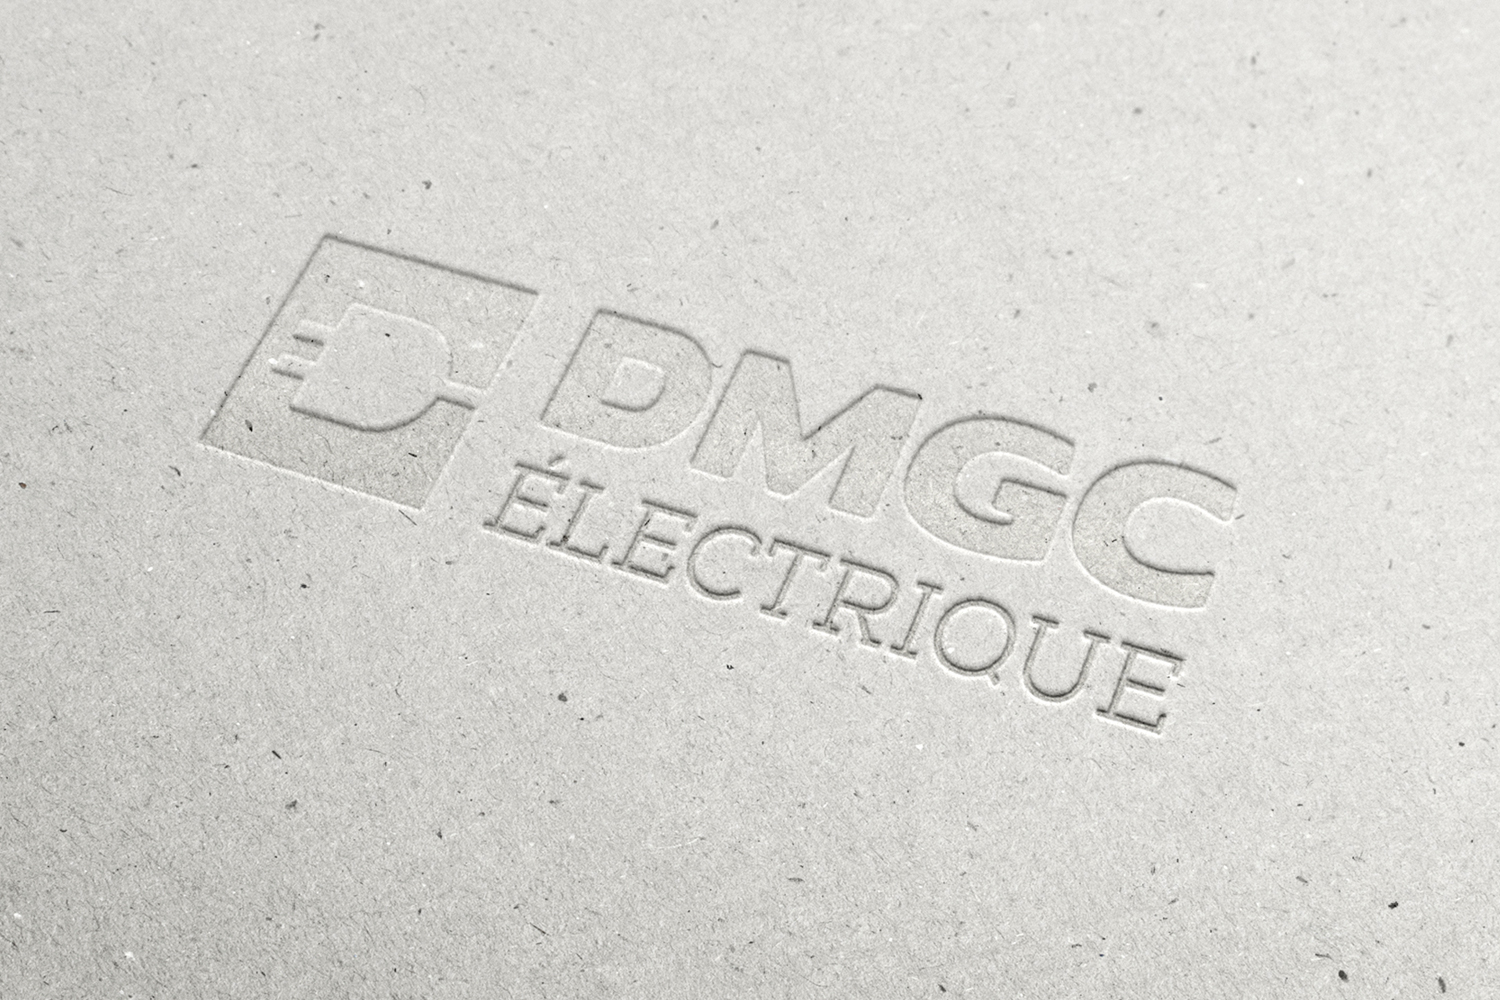 dmgc electrique's logo debossed into a grey recycled cardboard, simple, no ink, letterpress, branding, print design